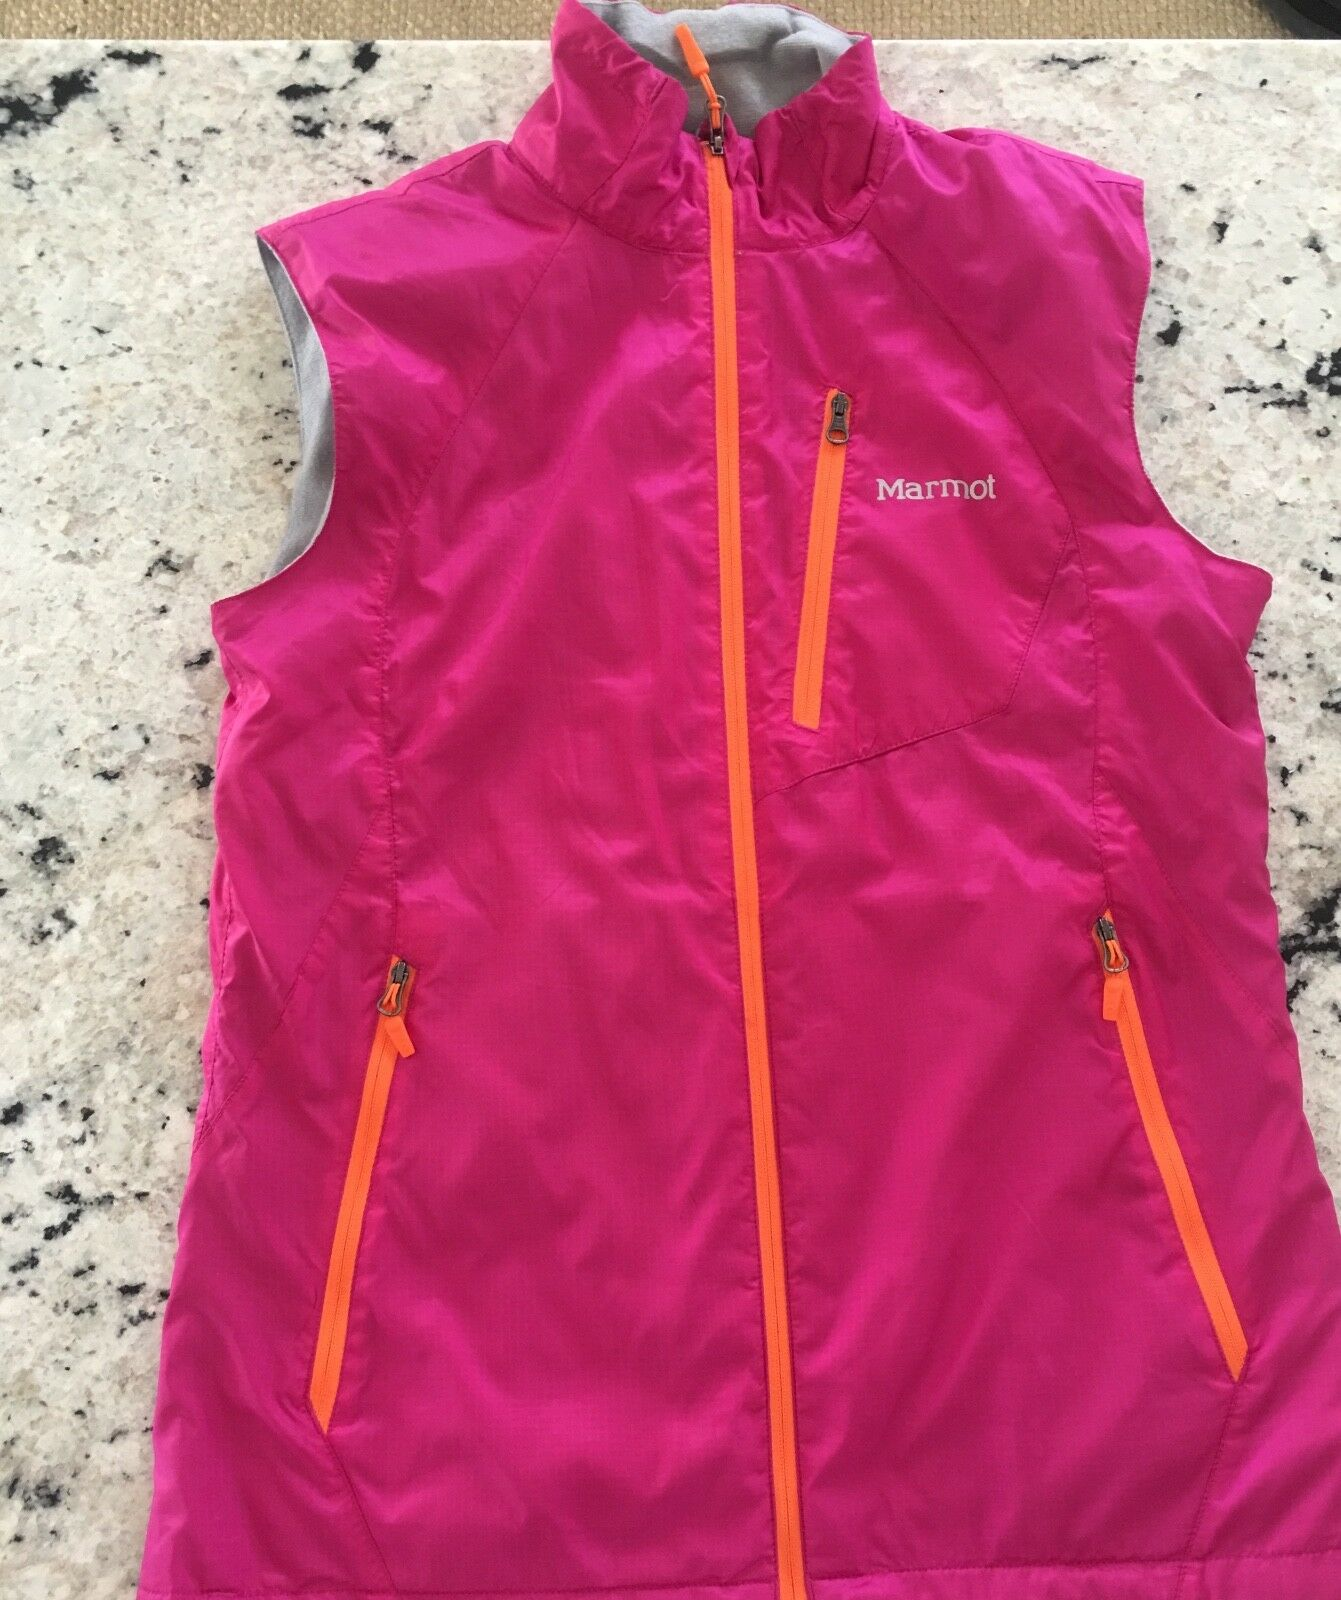 Marmot Pink vest with fleece lining size s p